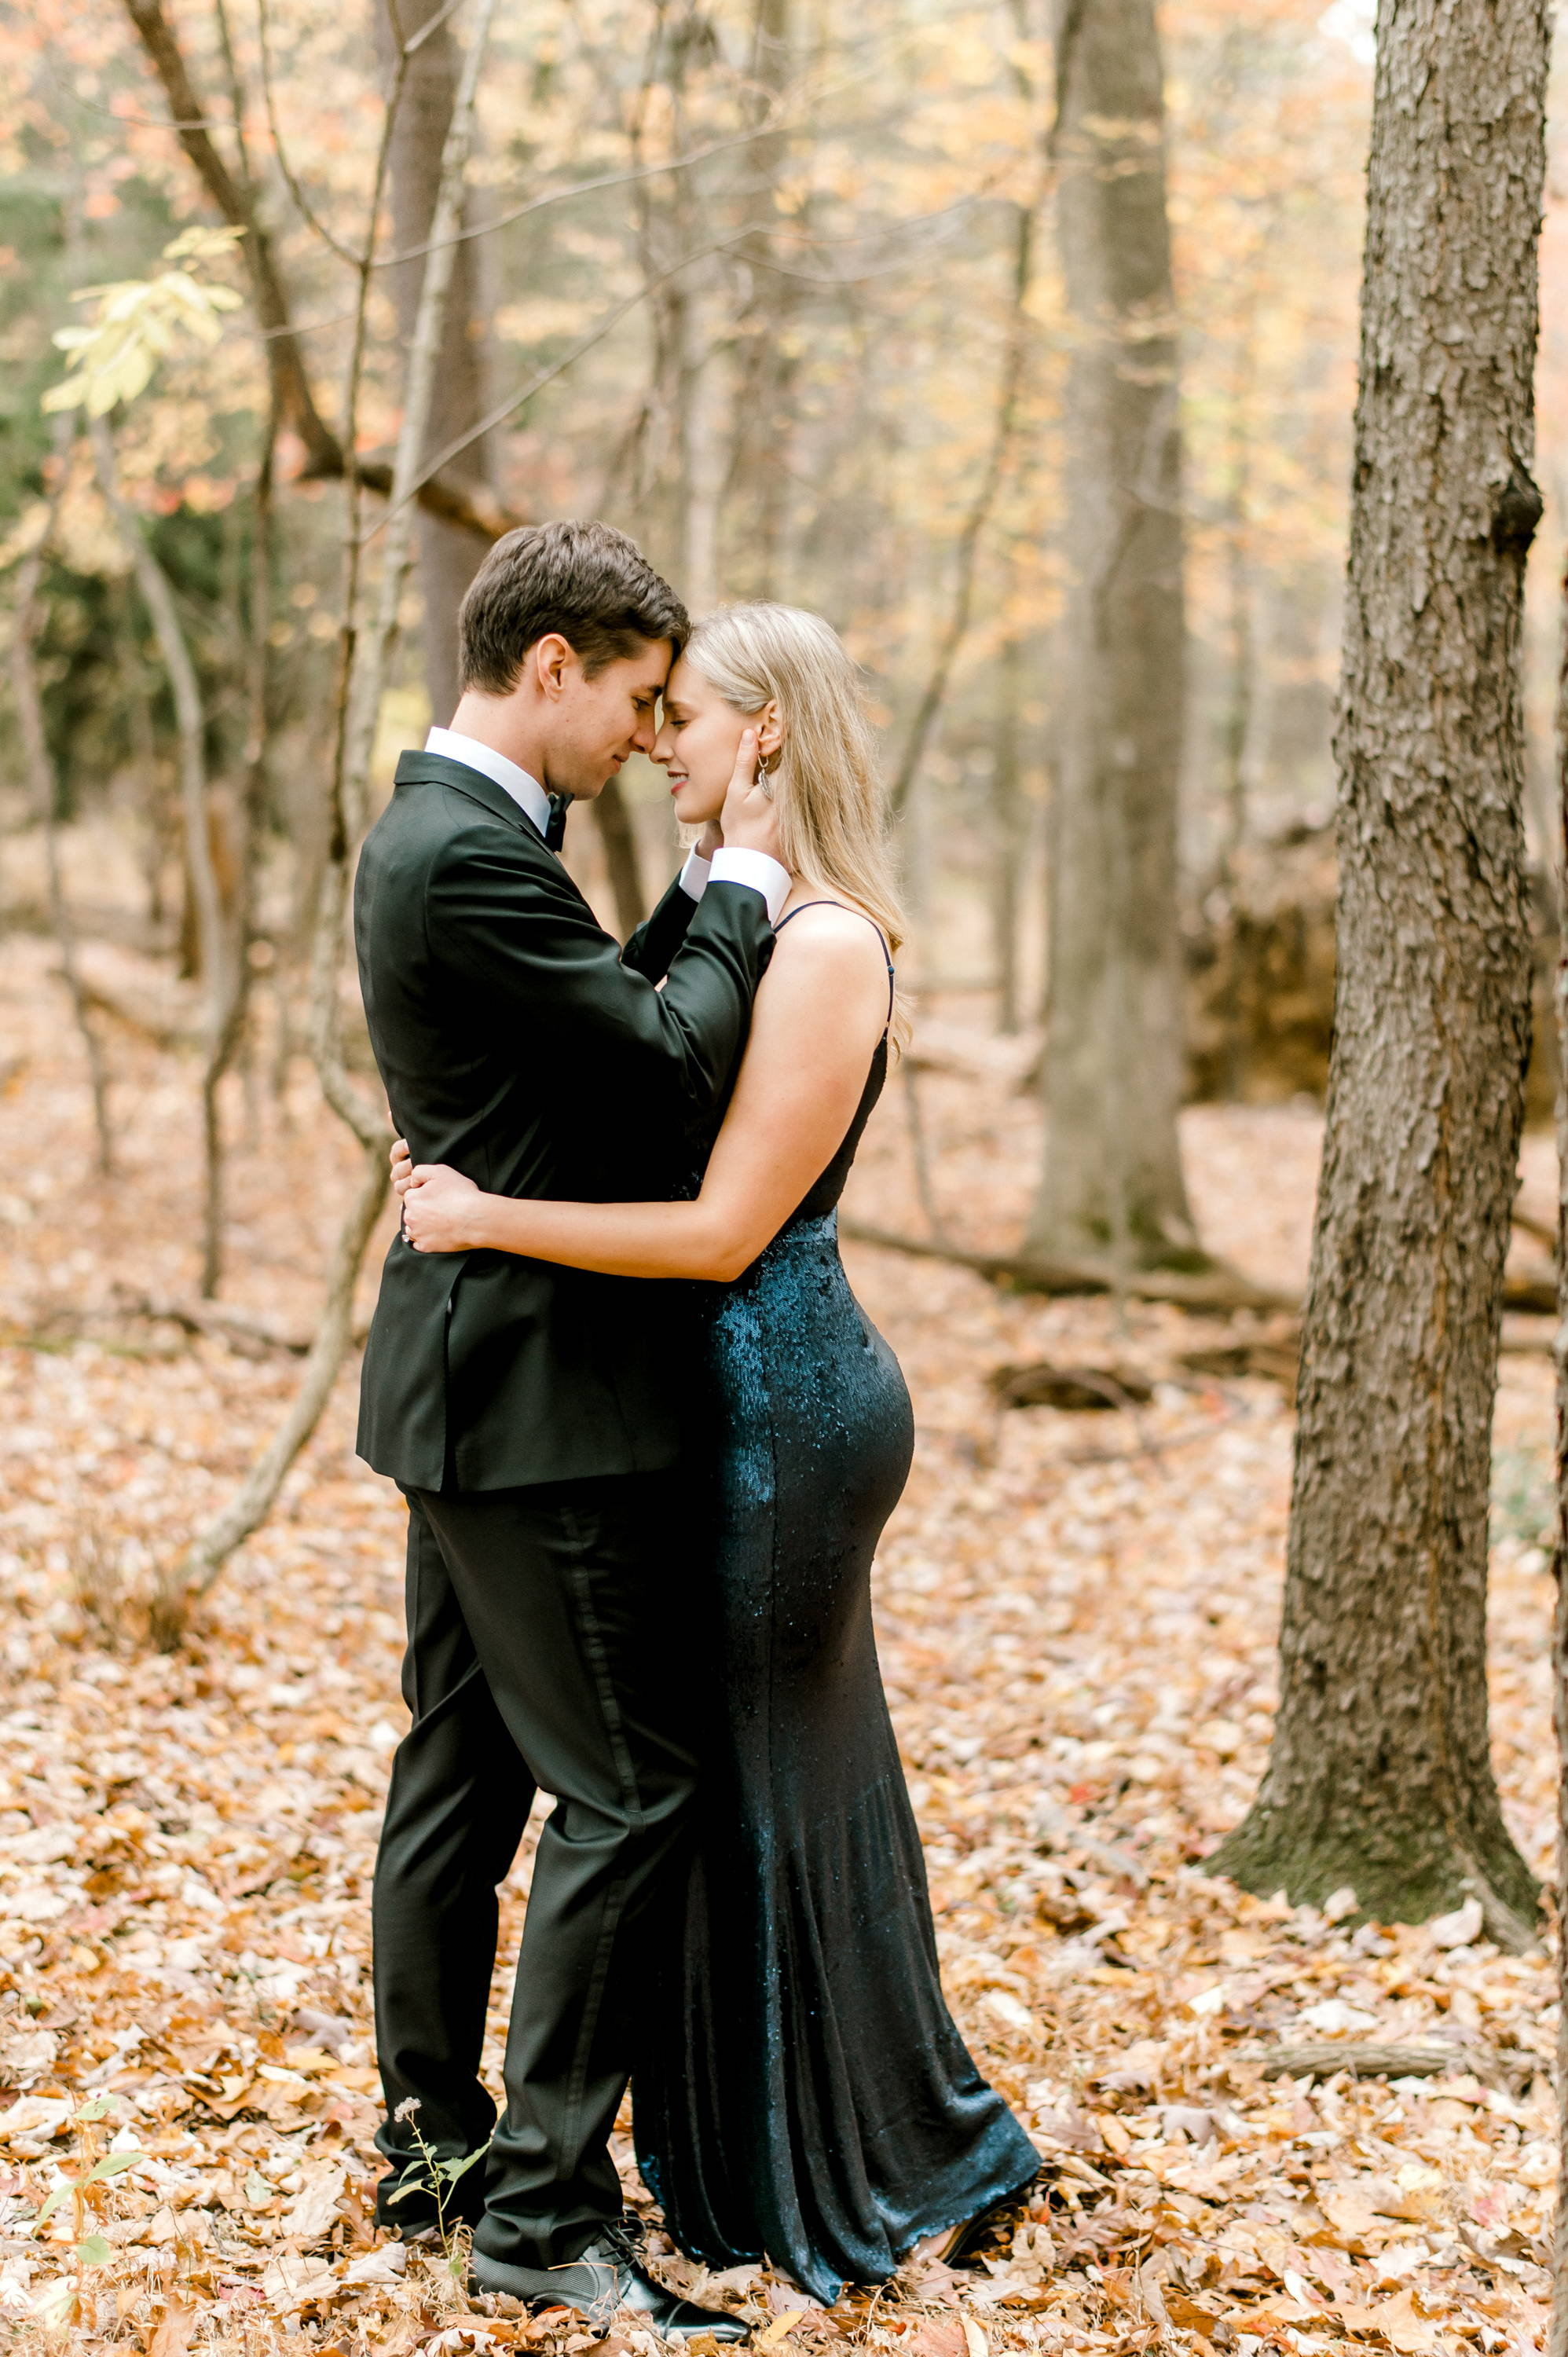 Henne Engagement Ring Couple Sean & Briana Share A Private Moment in the Woods